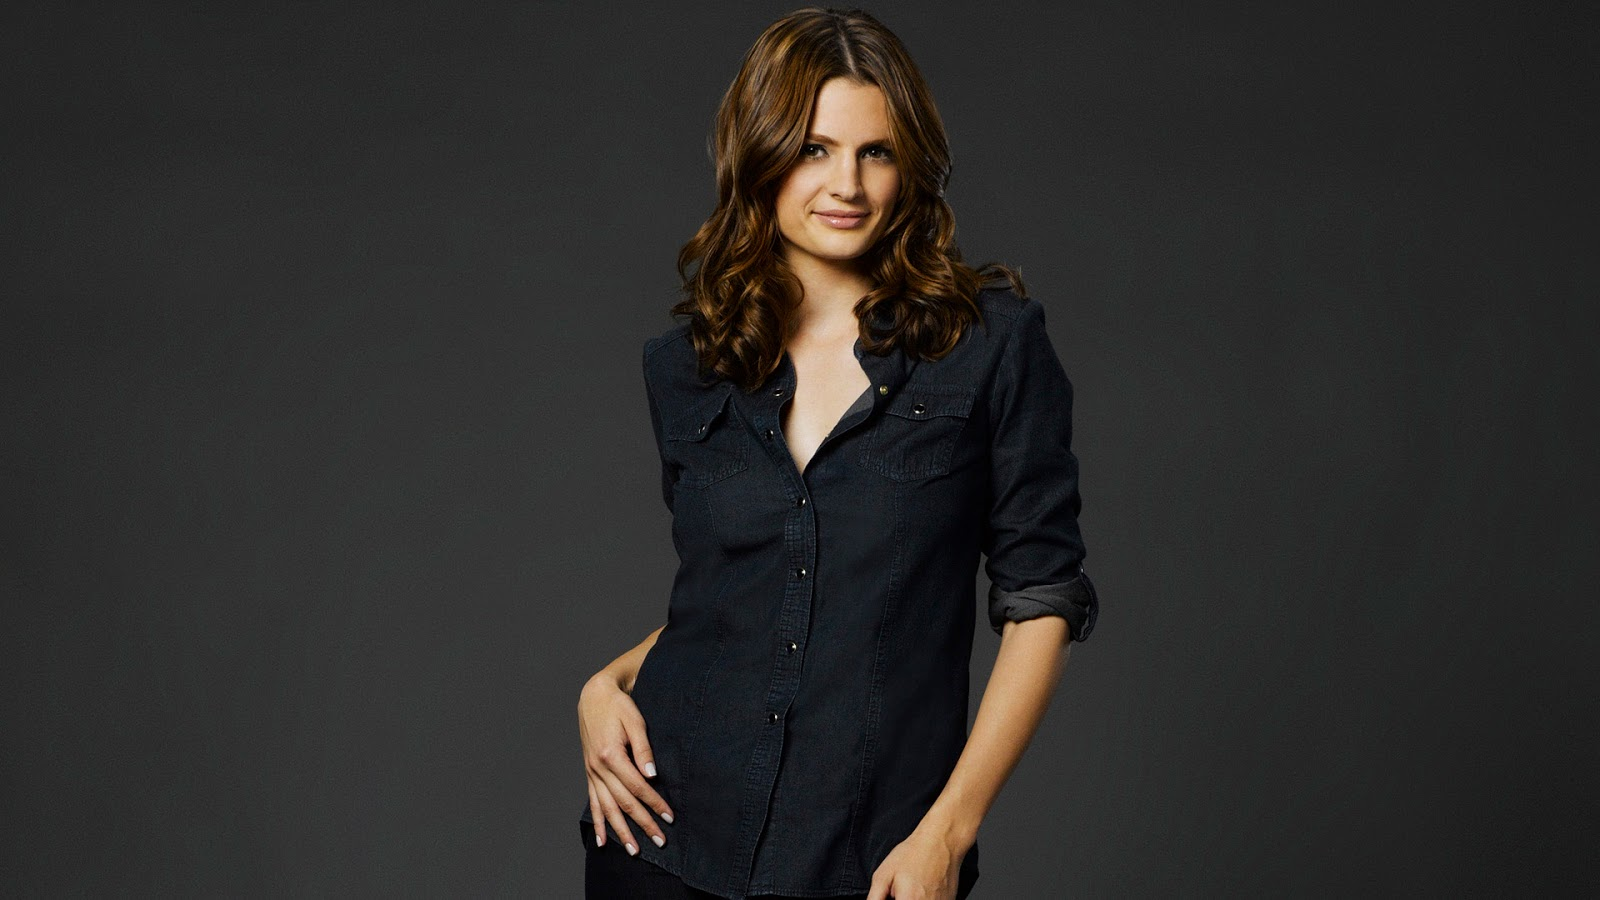 stana katic actress wallpaper - photo #12